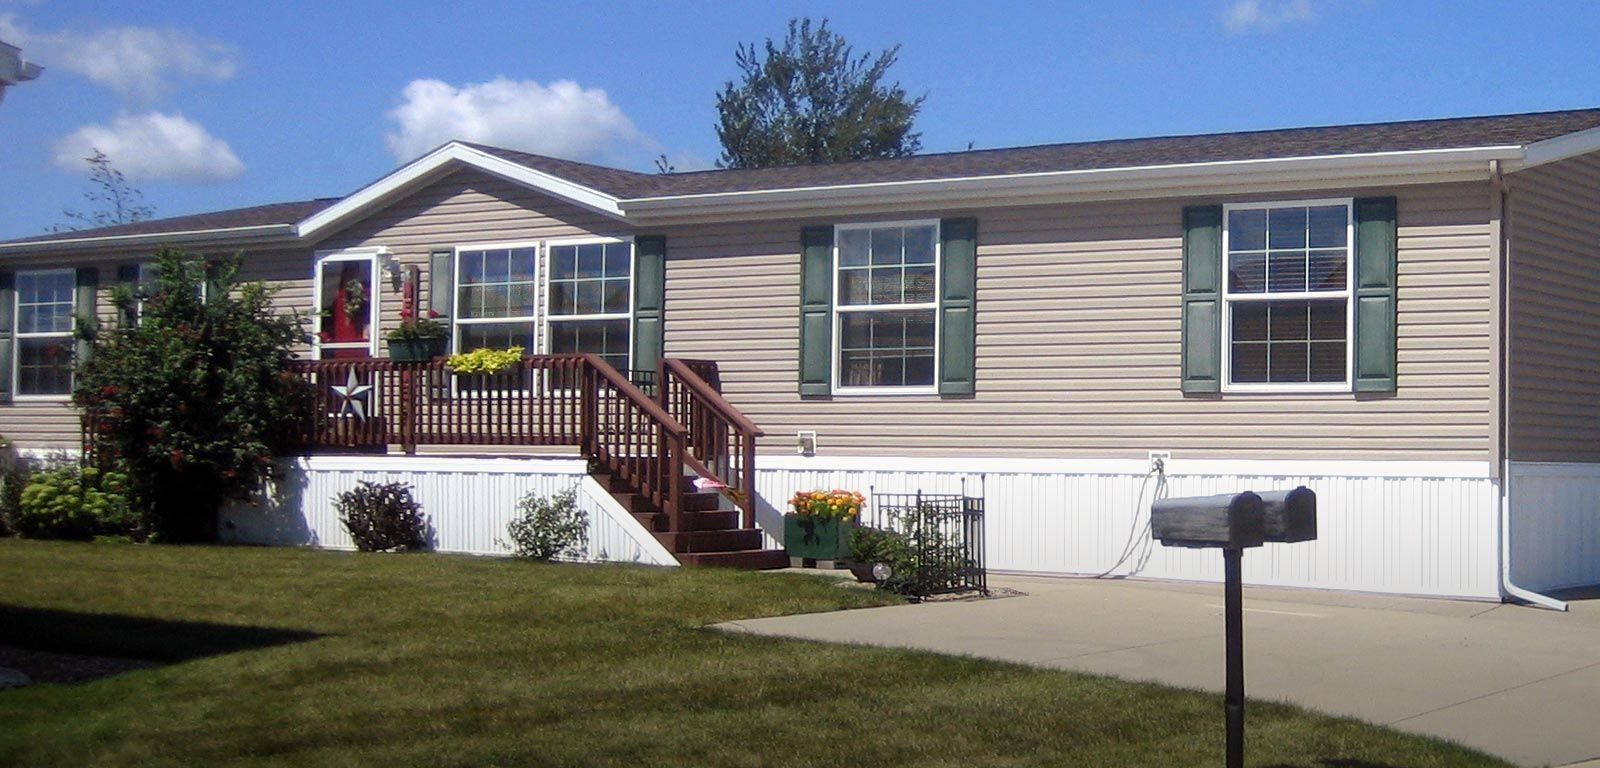 Affordable Mobile Homes For Sale In Iowa Renting A House Mobile